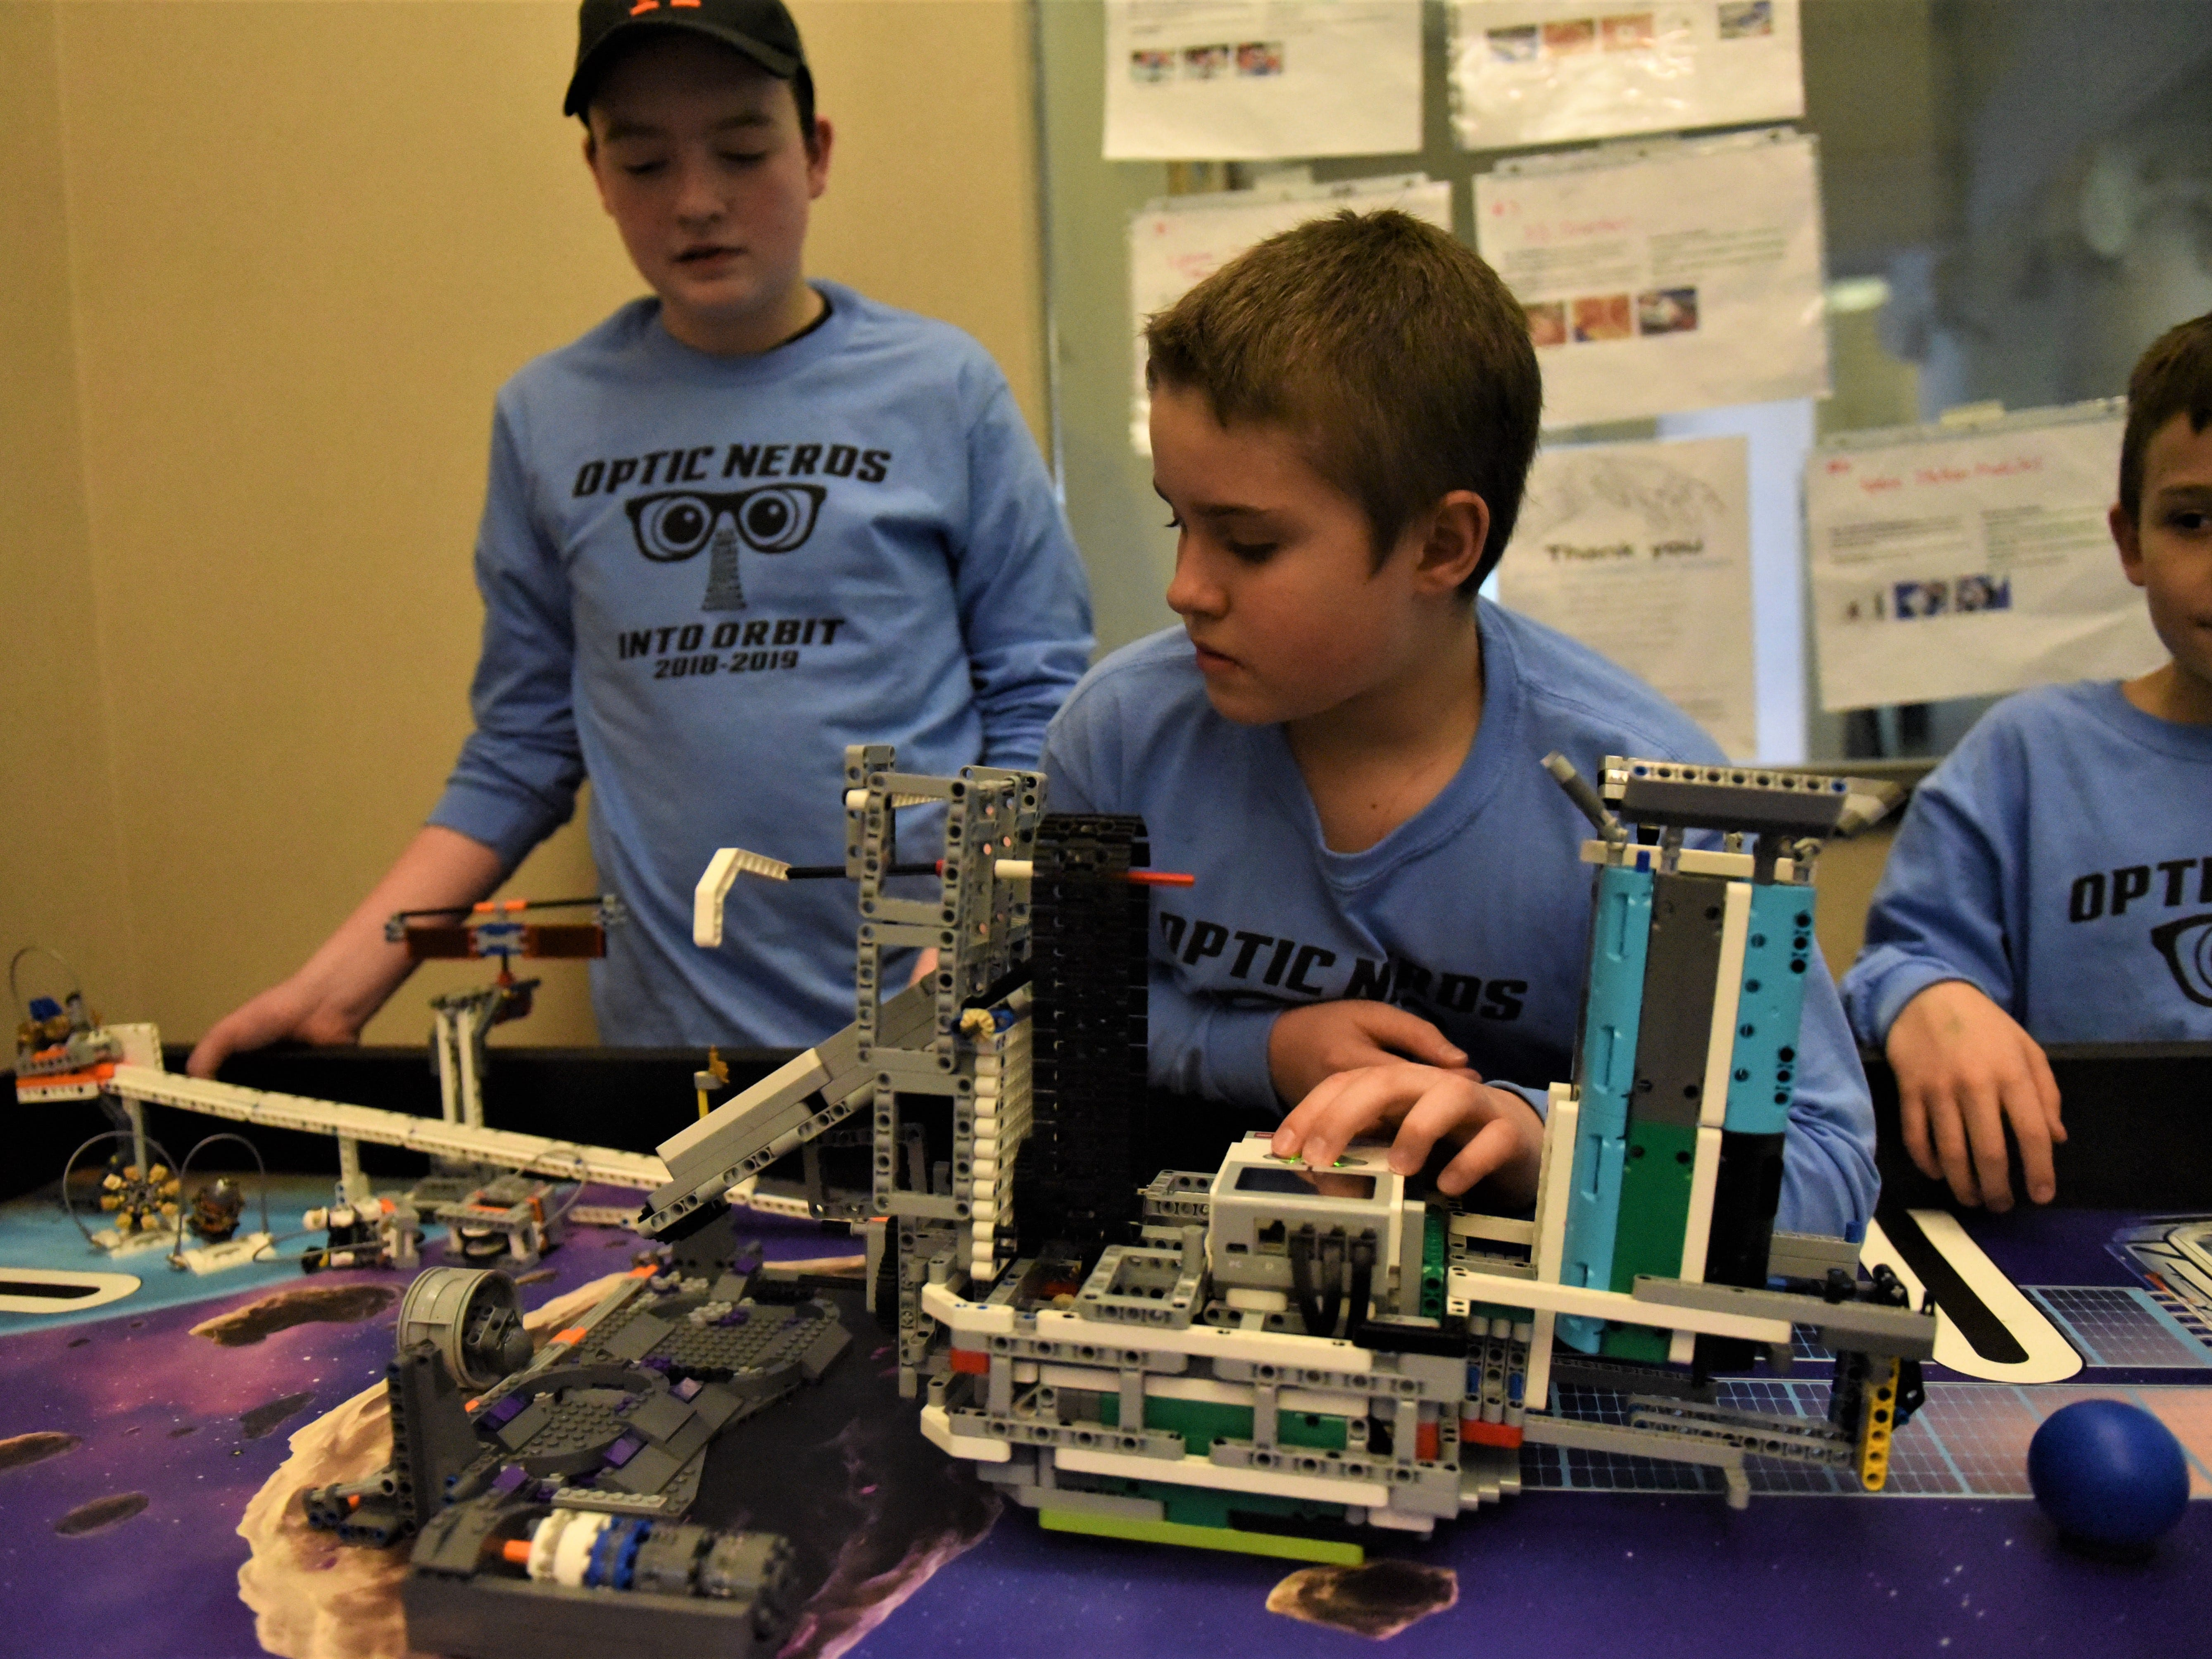 Joseph McCall, 11, tests a robot with his teammates on the Optic Nerds, a robotics team. The team will compete at the FIRST LEGO League Challenge on Jan. 26, and the theme is Into Orbit.